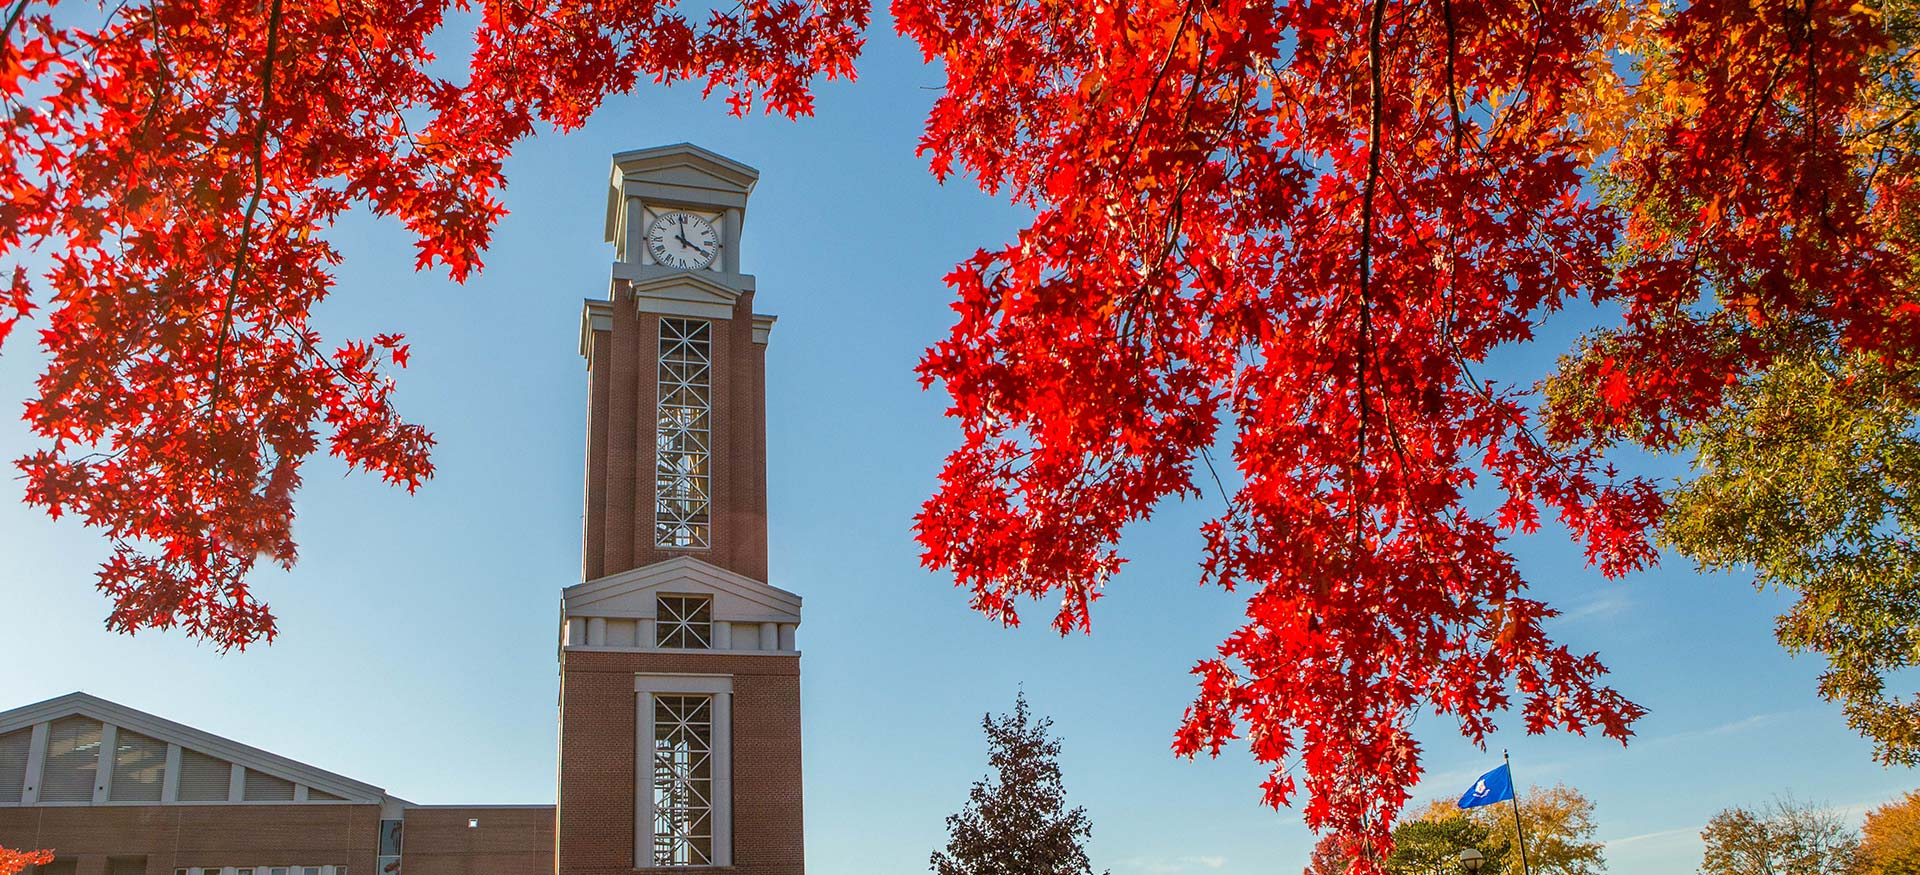 View of the Eastern clocktower with red fall foliage in the foreground